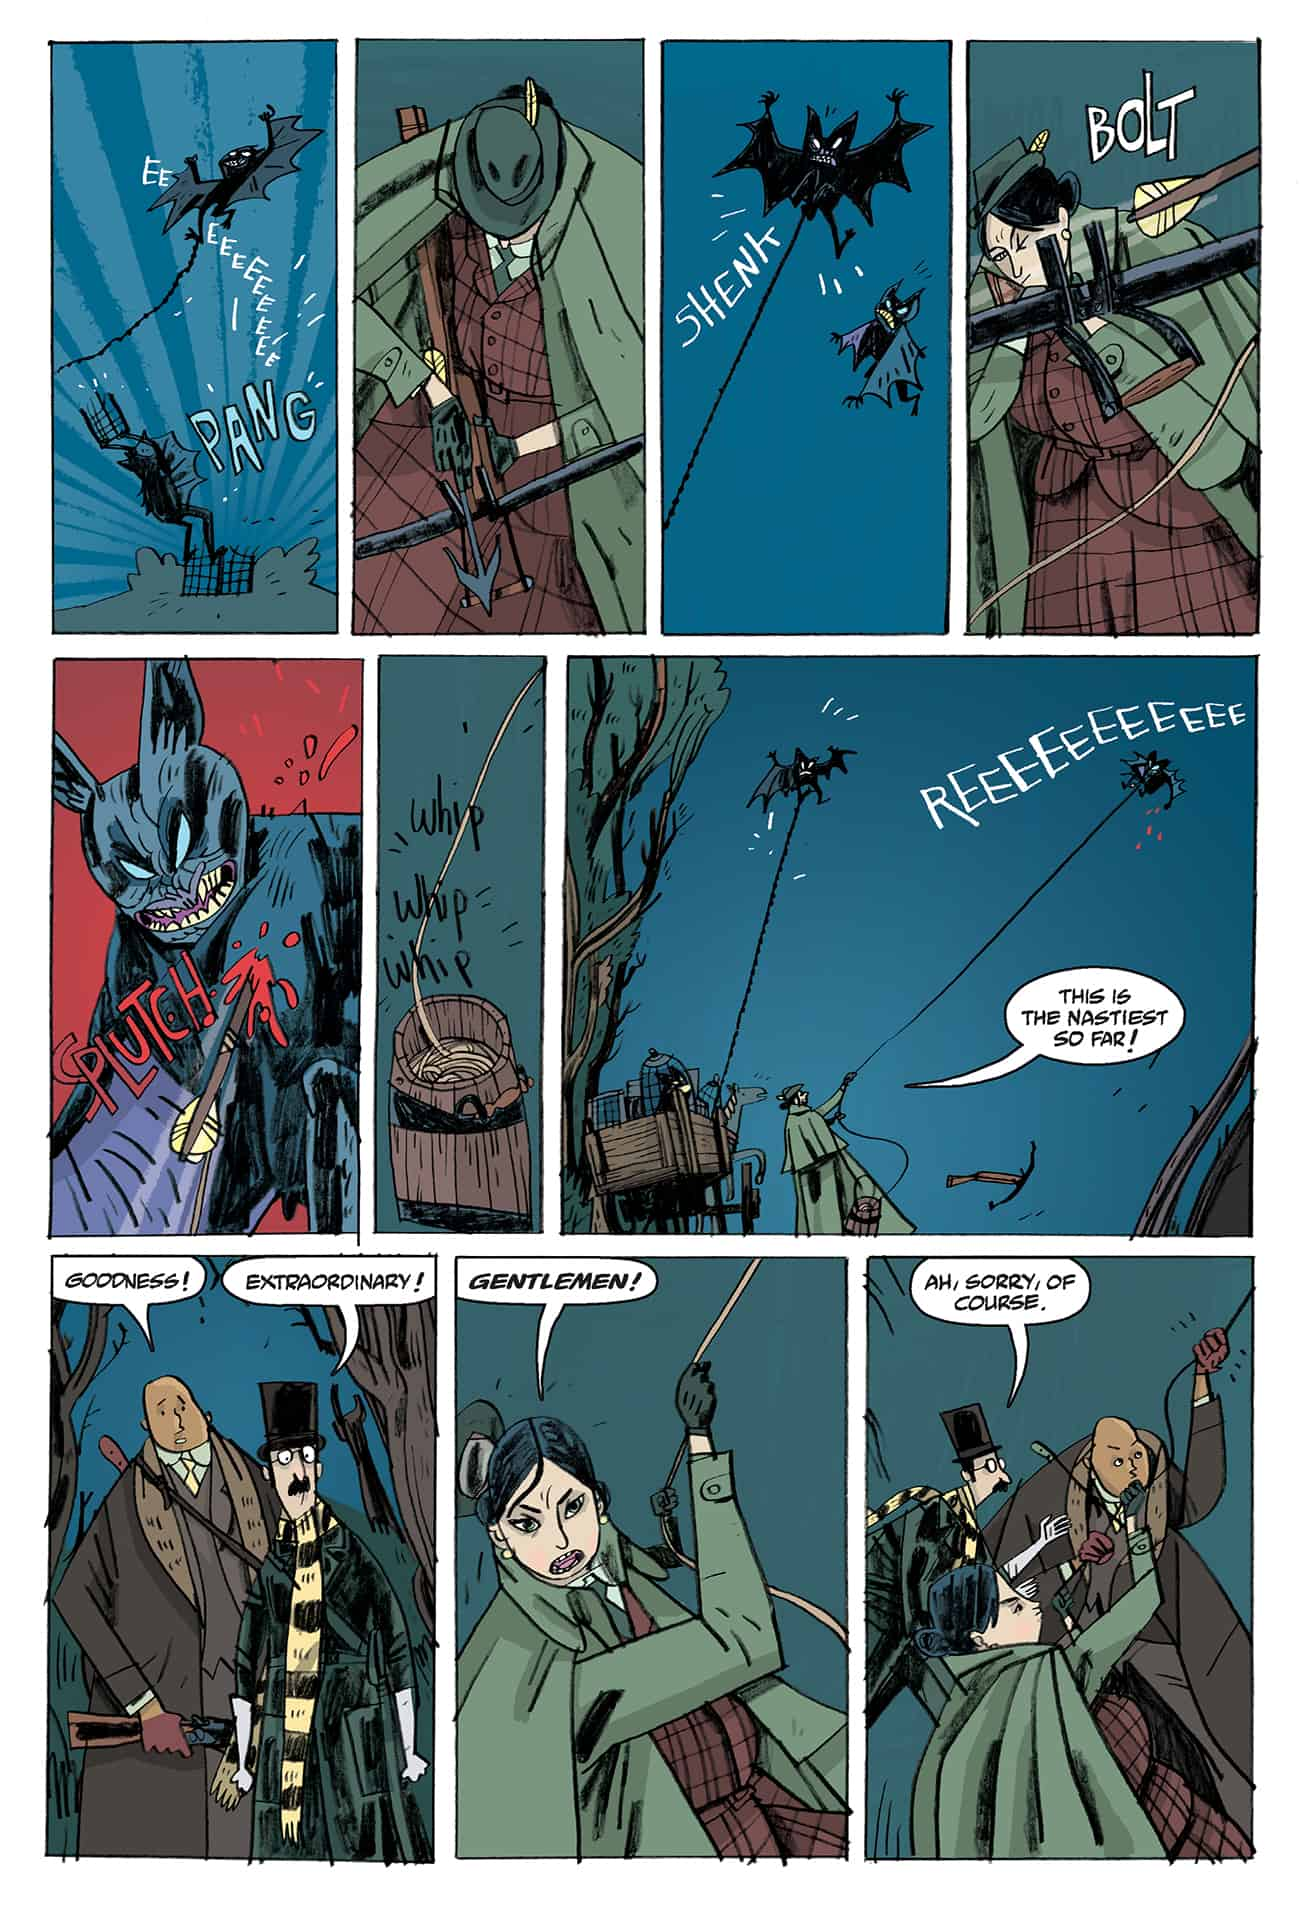 OEWE BLACKWATER PG 06 - Exclusive Preview of OUR ENCOUNTERS WITH EVIL by Mike Mignola & Warwick Johnson-Cadwell